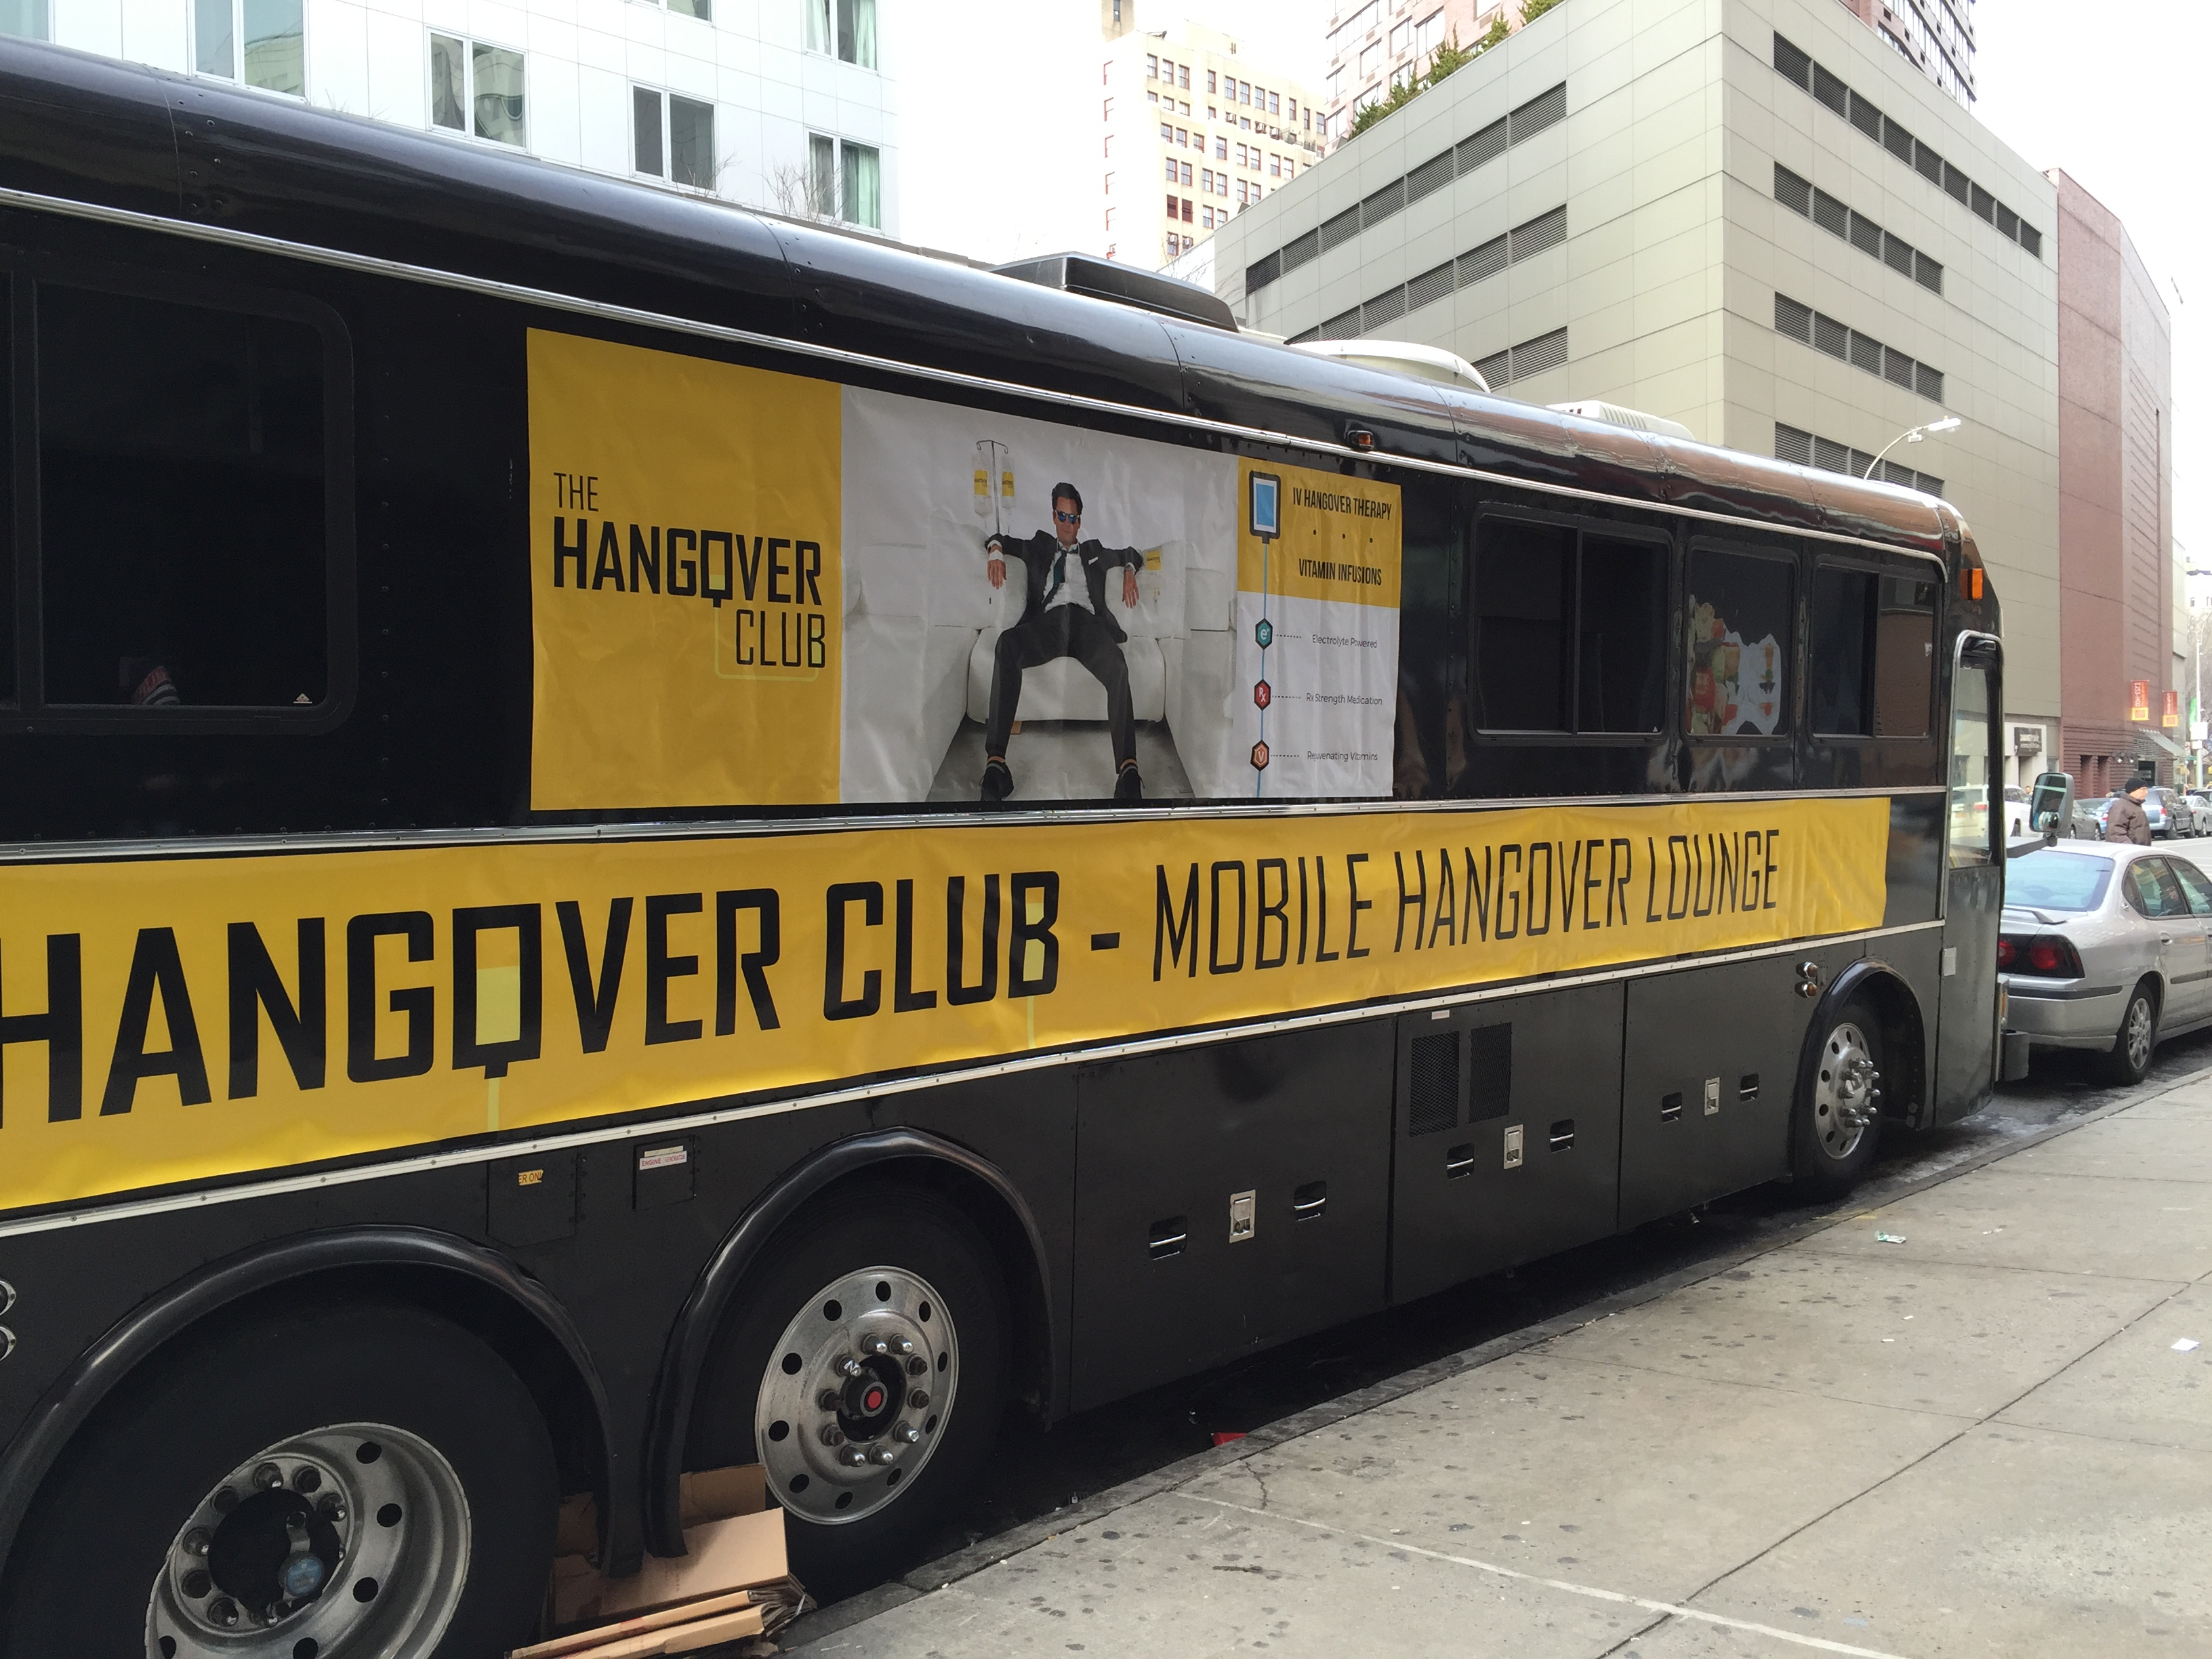 The Hangover Club is similar to Seamless, delivering hangover cures via IV to people's homes (Photo: Courtesy The Hangover Club).